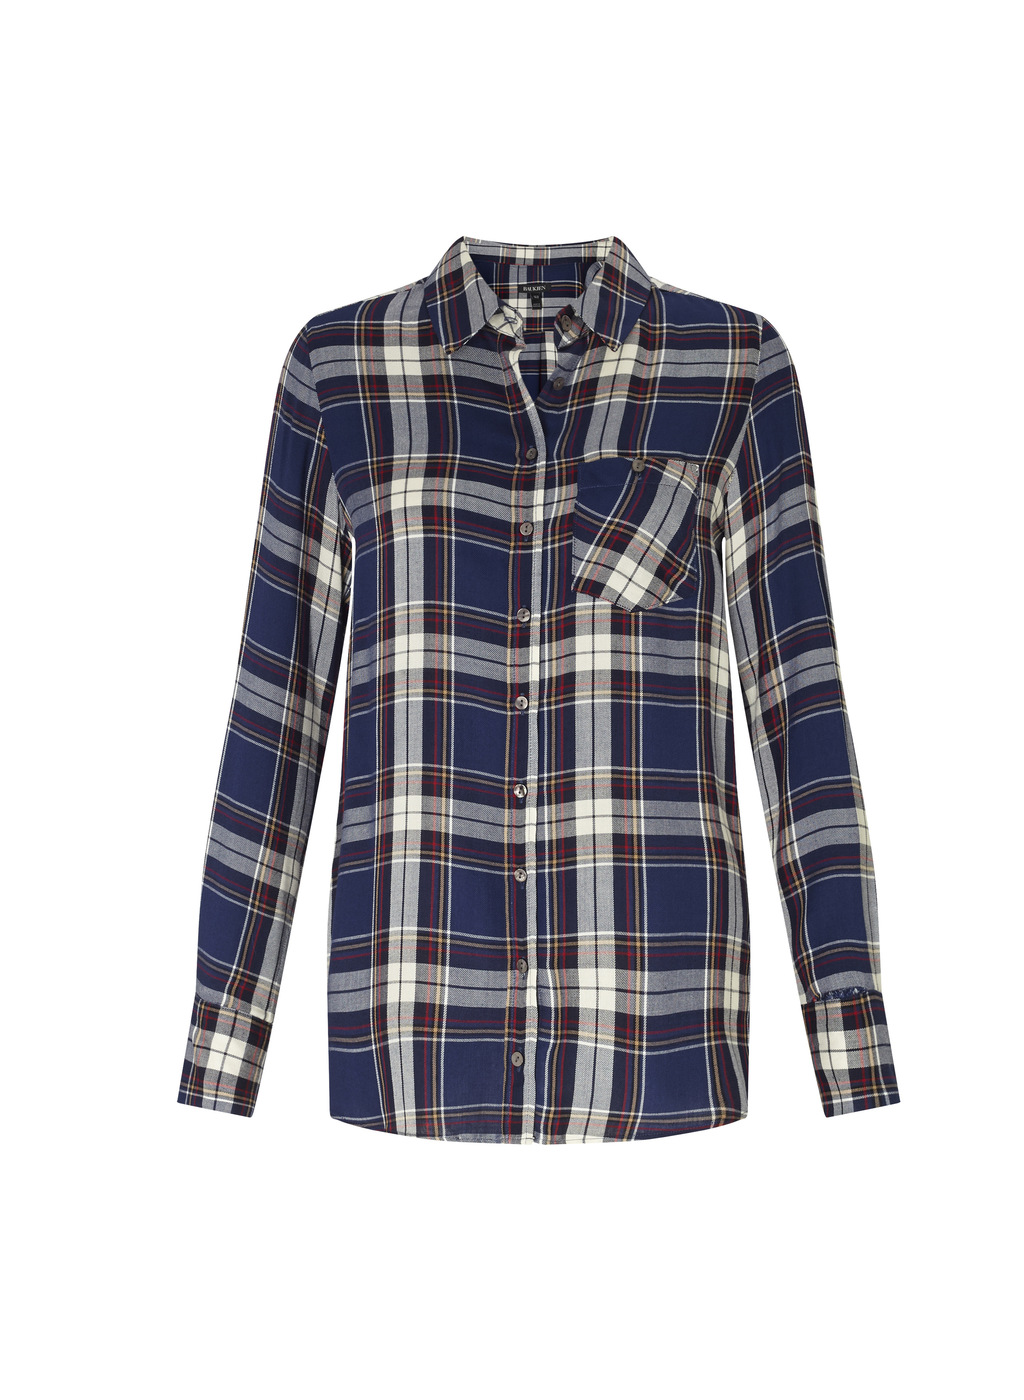 Womenswear Caris Checked Shirt - neckline: shirt collar/peter pan/zip with opening; pattern: checked/gingham; style: shirt; predominant colour: navy; secondary colour: light grey; occasions: casual; length: standard; fibres: viscose/rayon - 100%; fit: body skimming; sleeve length: long sleeve; sleeve style: standard; texture group: cotton feel fabrics; pattern type: fabric; multicoloured: multicoloured; season: a/w 2016; wardrobe: highlight